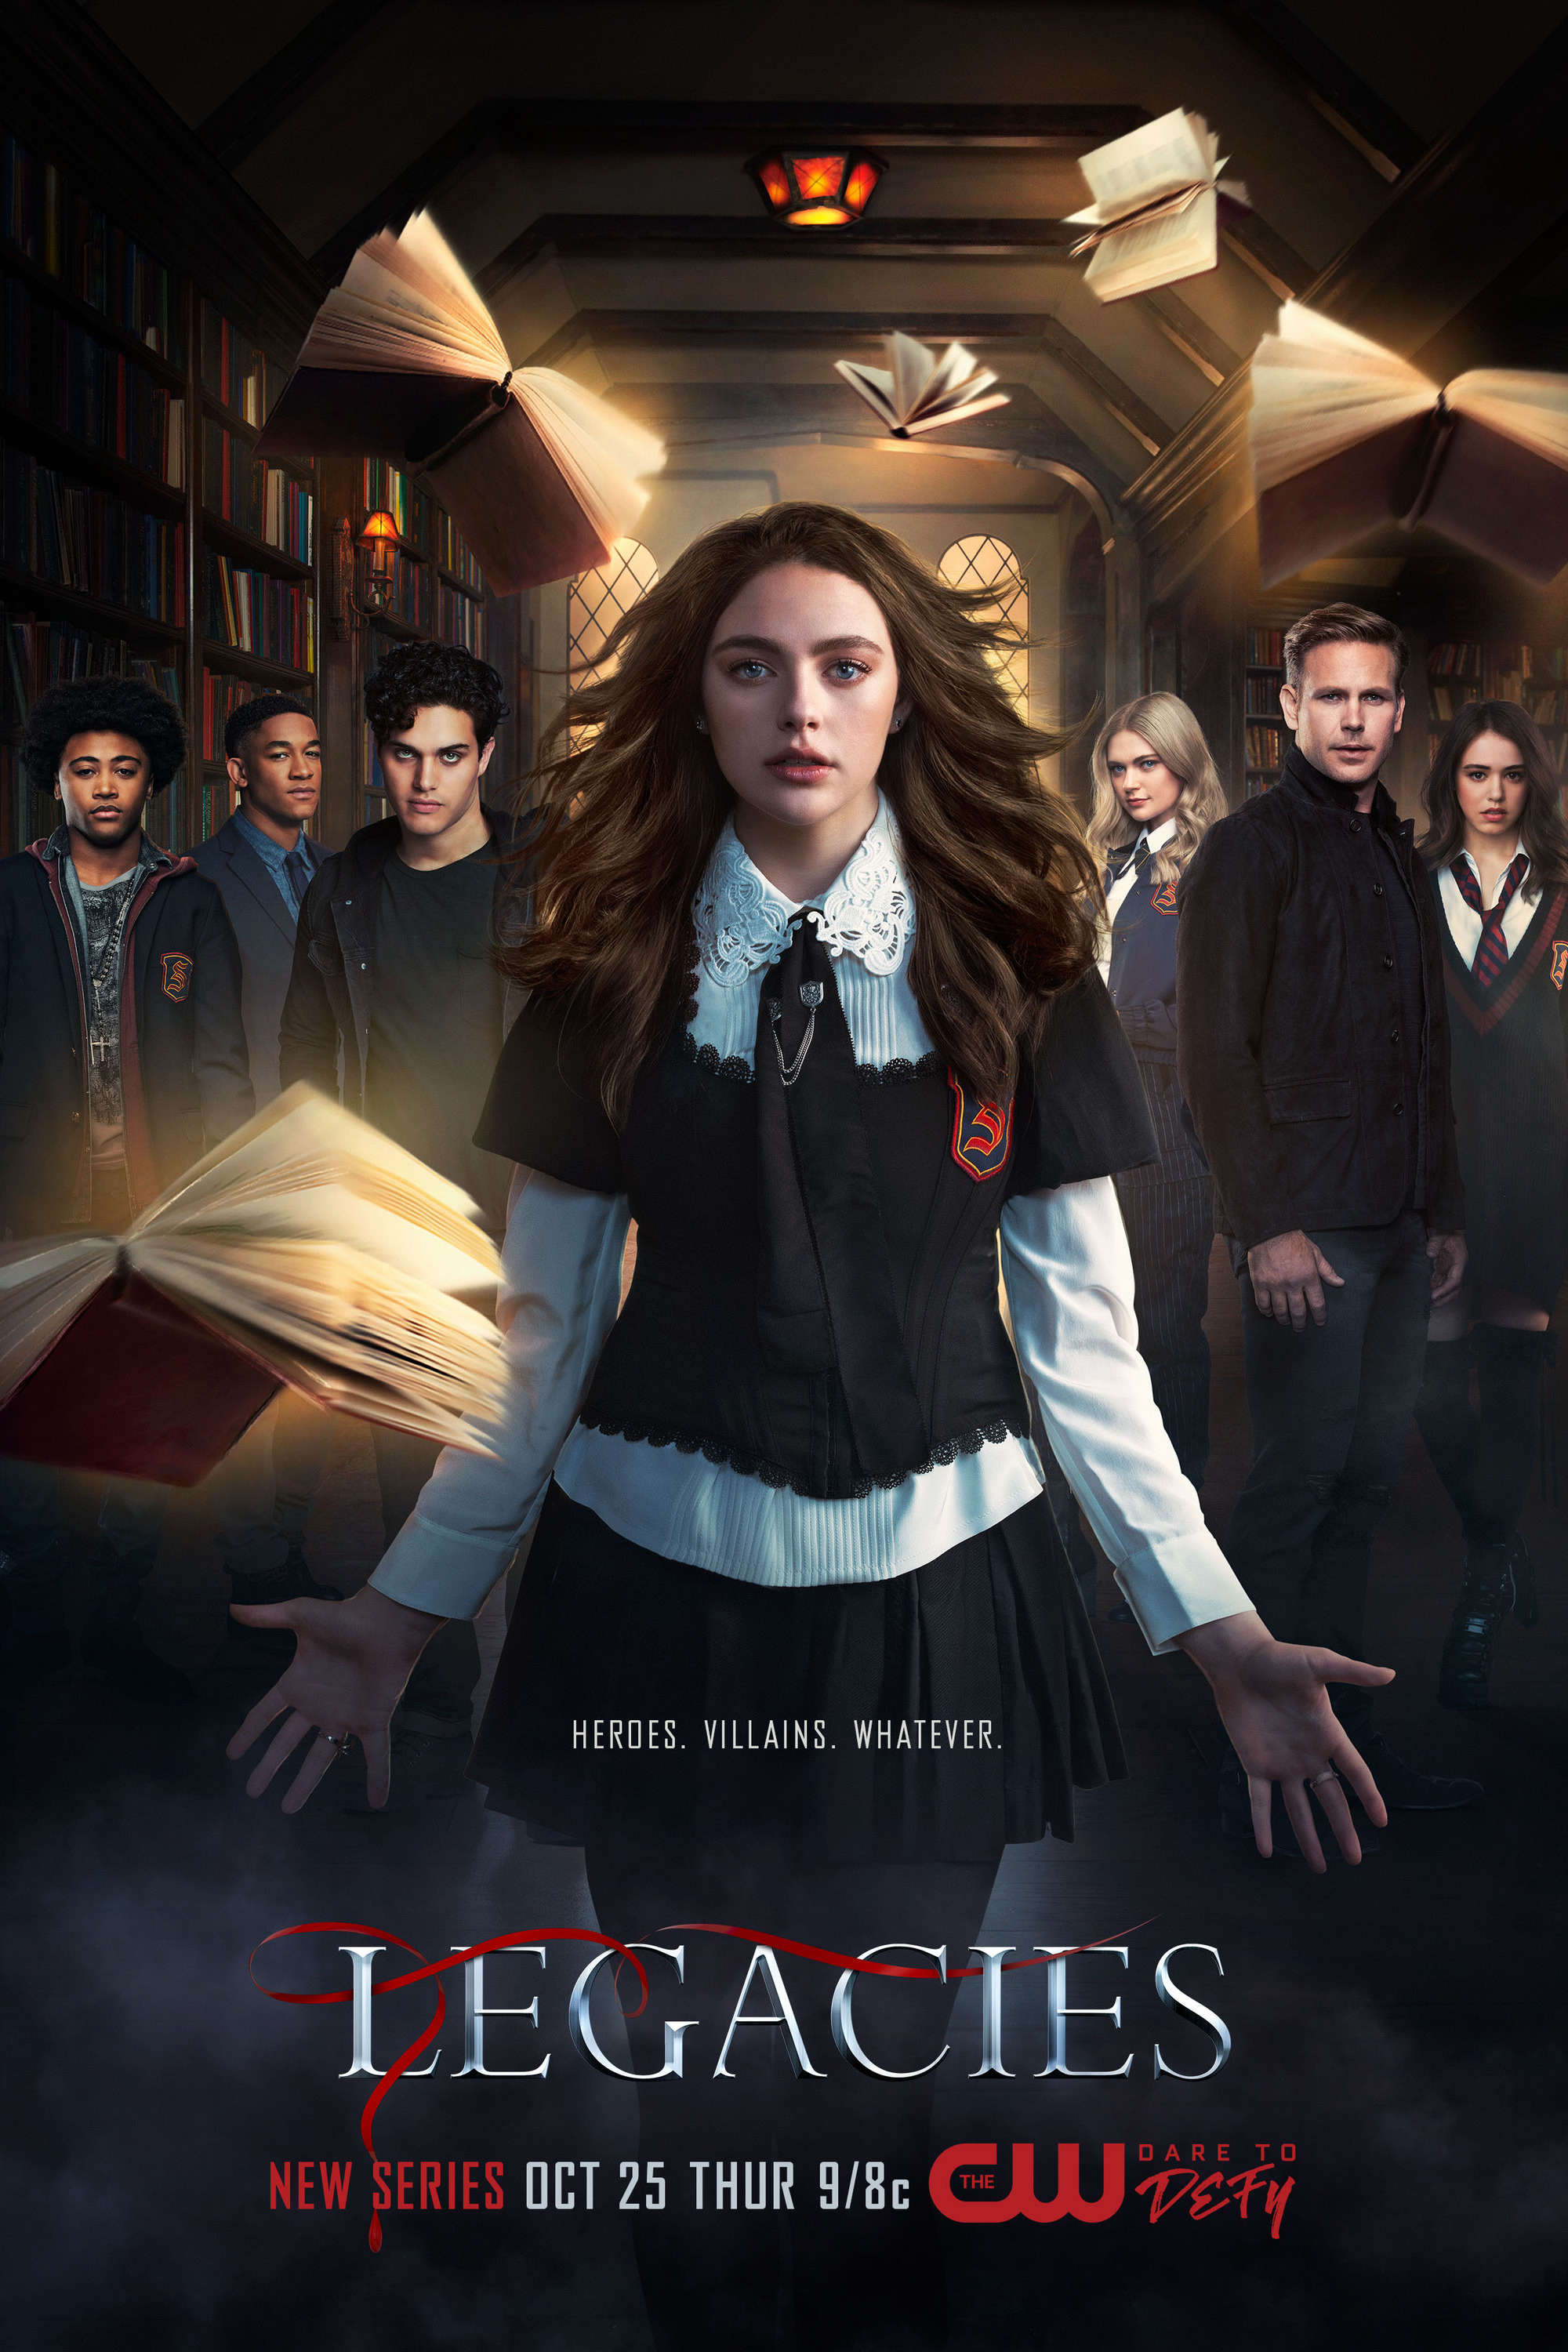 Temporada Uno (Legacies)